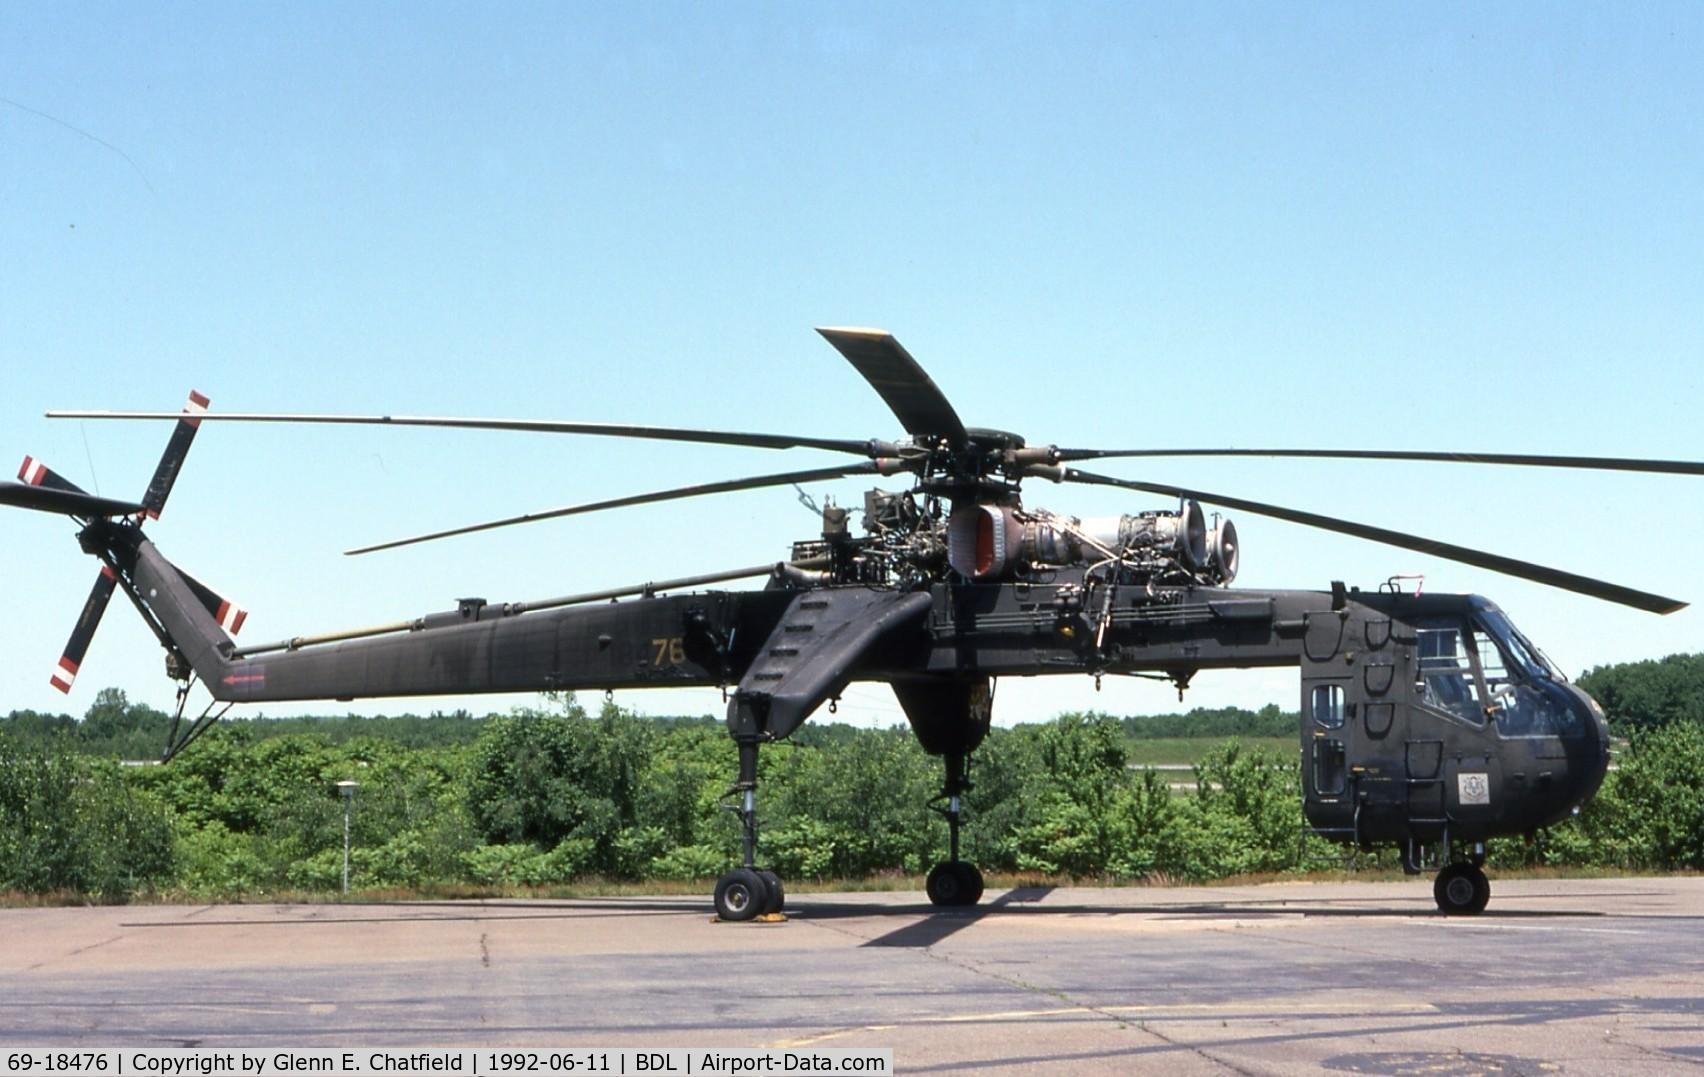 69-18476, 1970 Sikorsky S-64F Skycrane C/N 64084, When active as CH-54B 69-18476